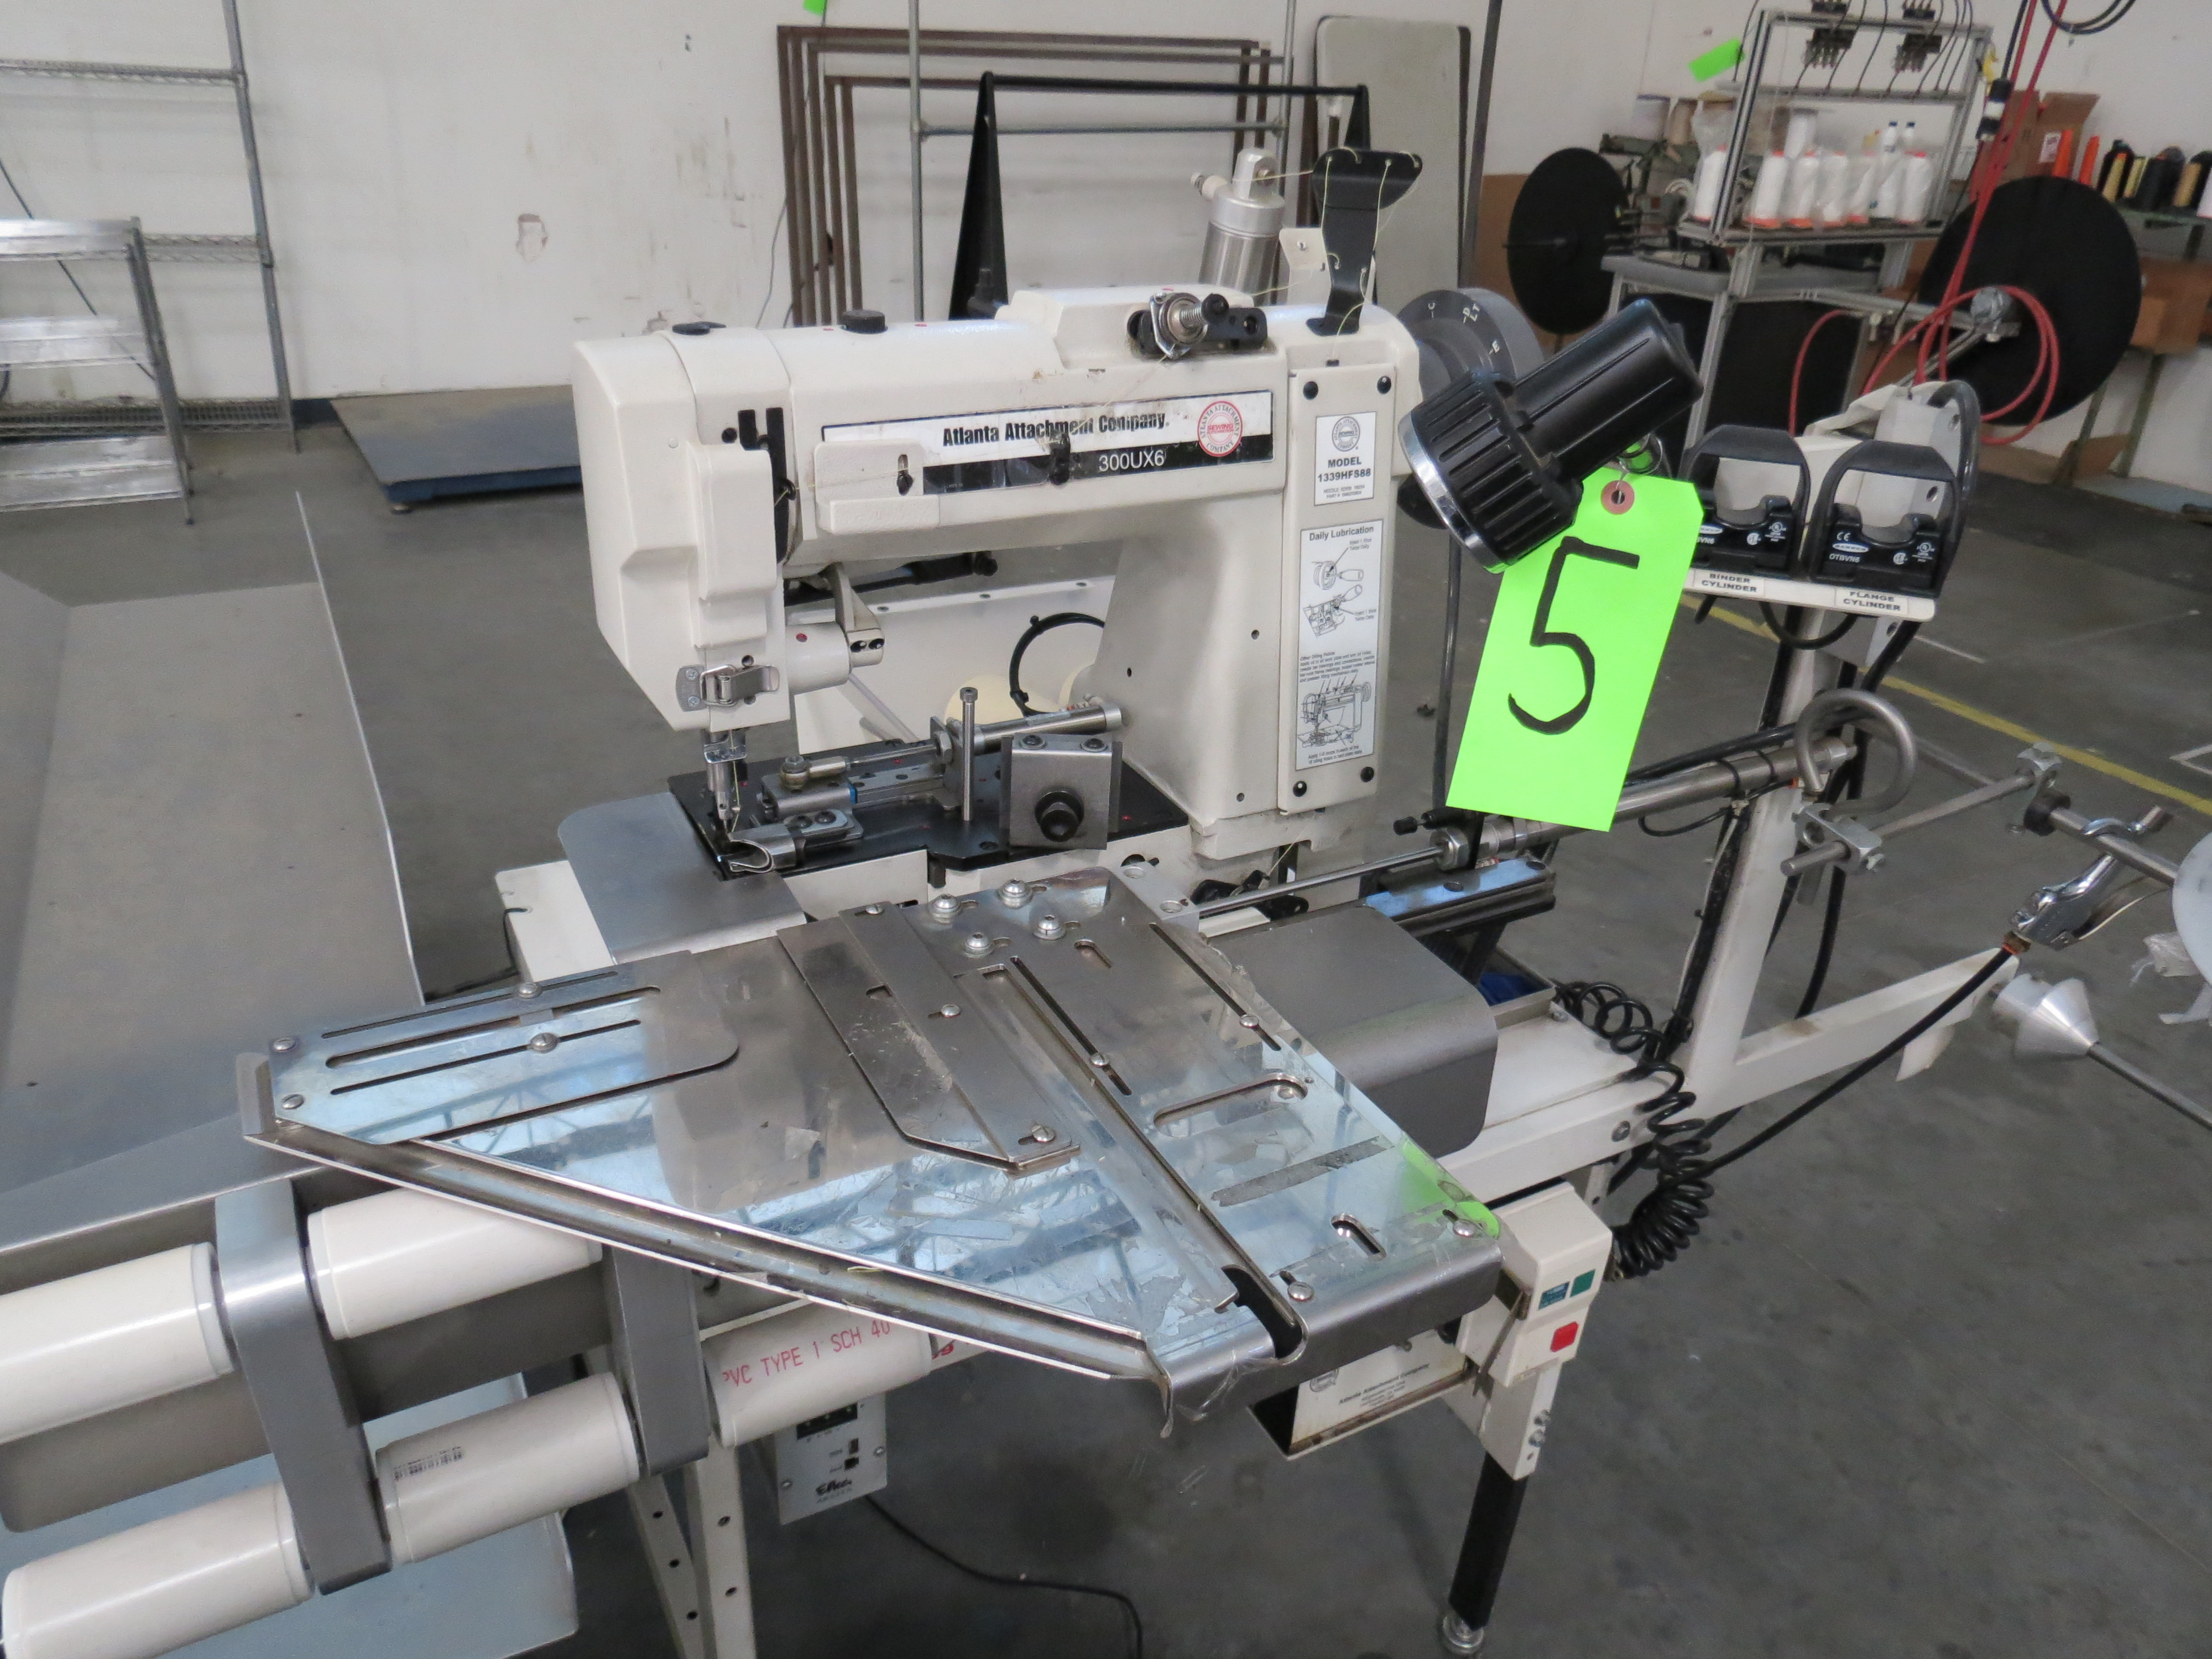 Atlanta Attachment Company 1339HFSHalf-Cap Sewing Machine, SN:209226071617, 220V, AAC 300UX6, ( - Image 2 of 5